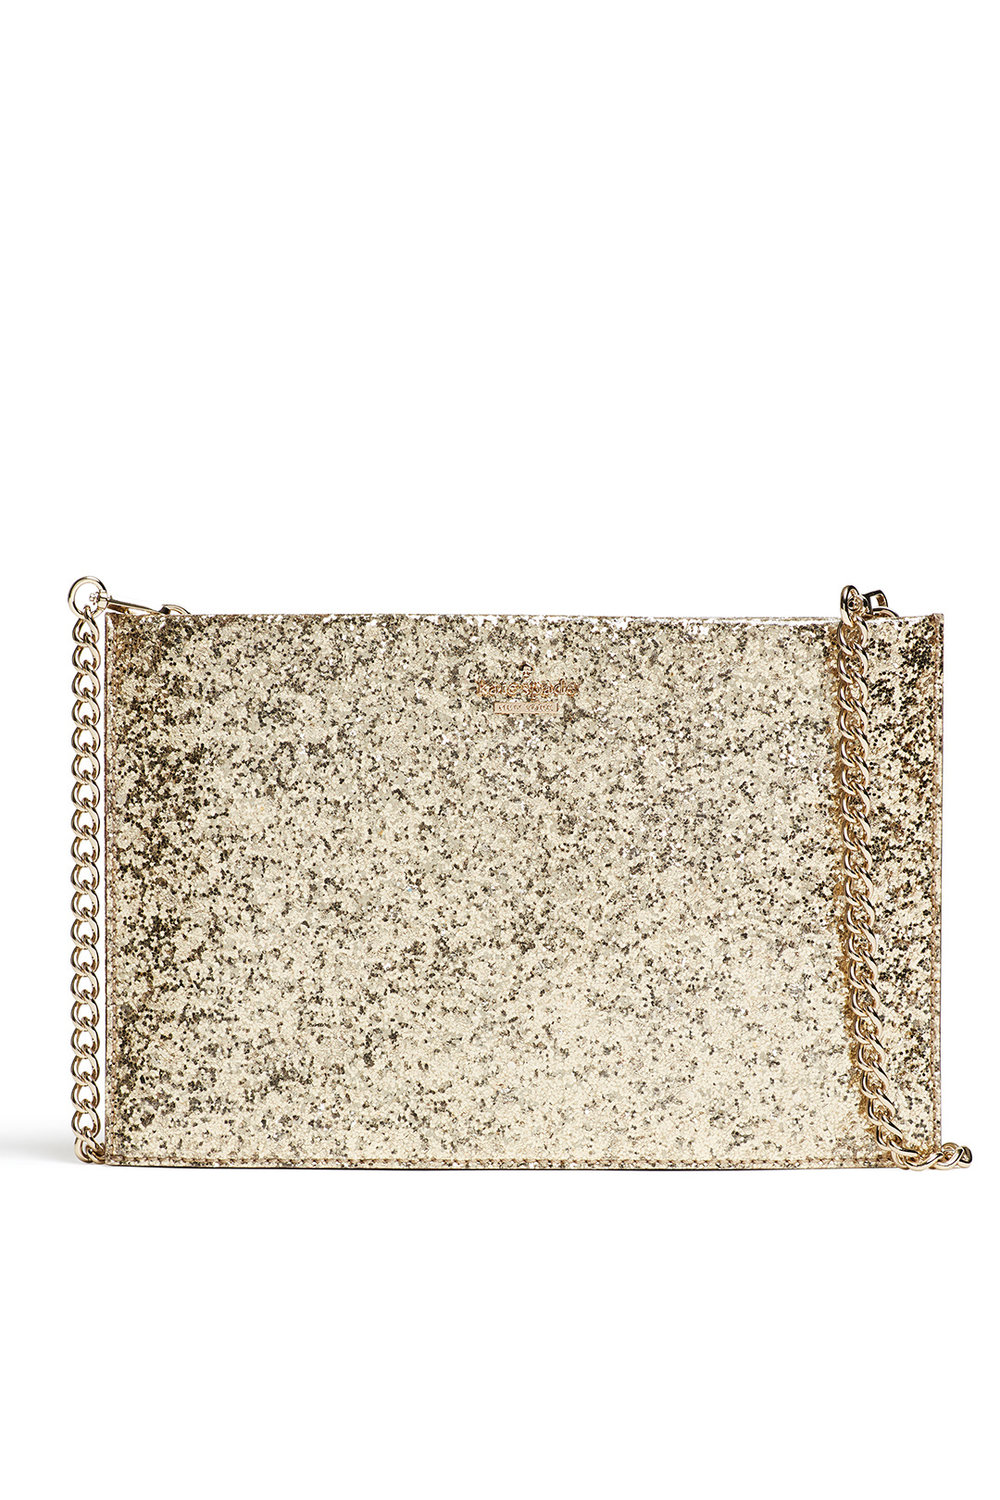 Kate Spade Gold Glitterbug Bag - Great size for just the essentials. It's perfect for a night out on the town!